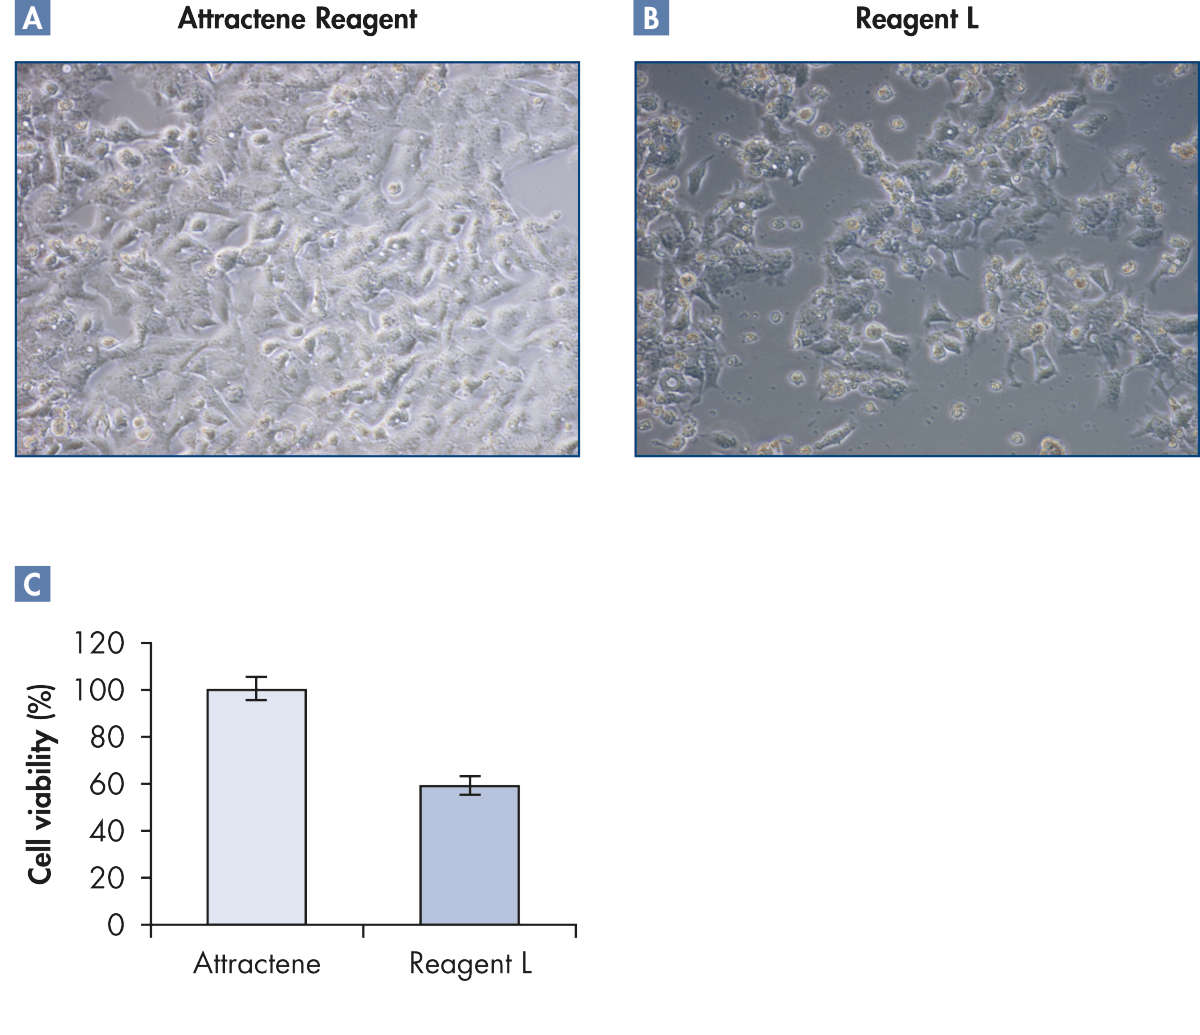 Healthy cells after transfection using Attractene Reagent.